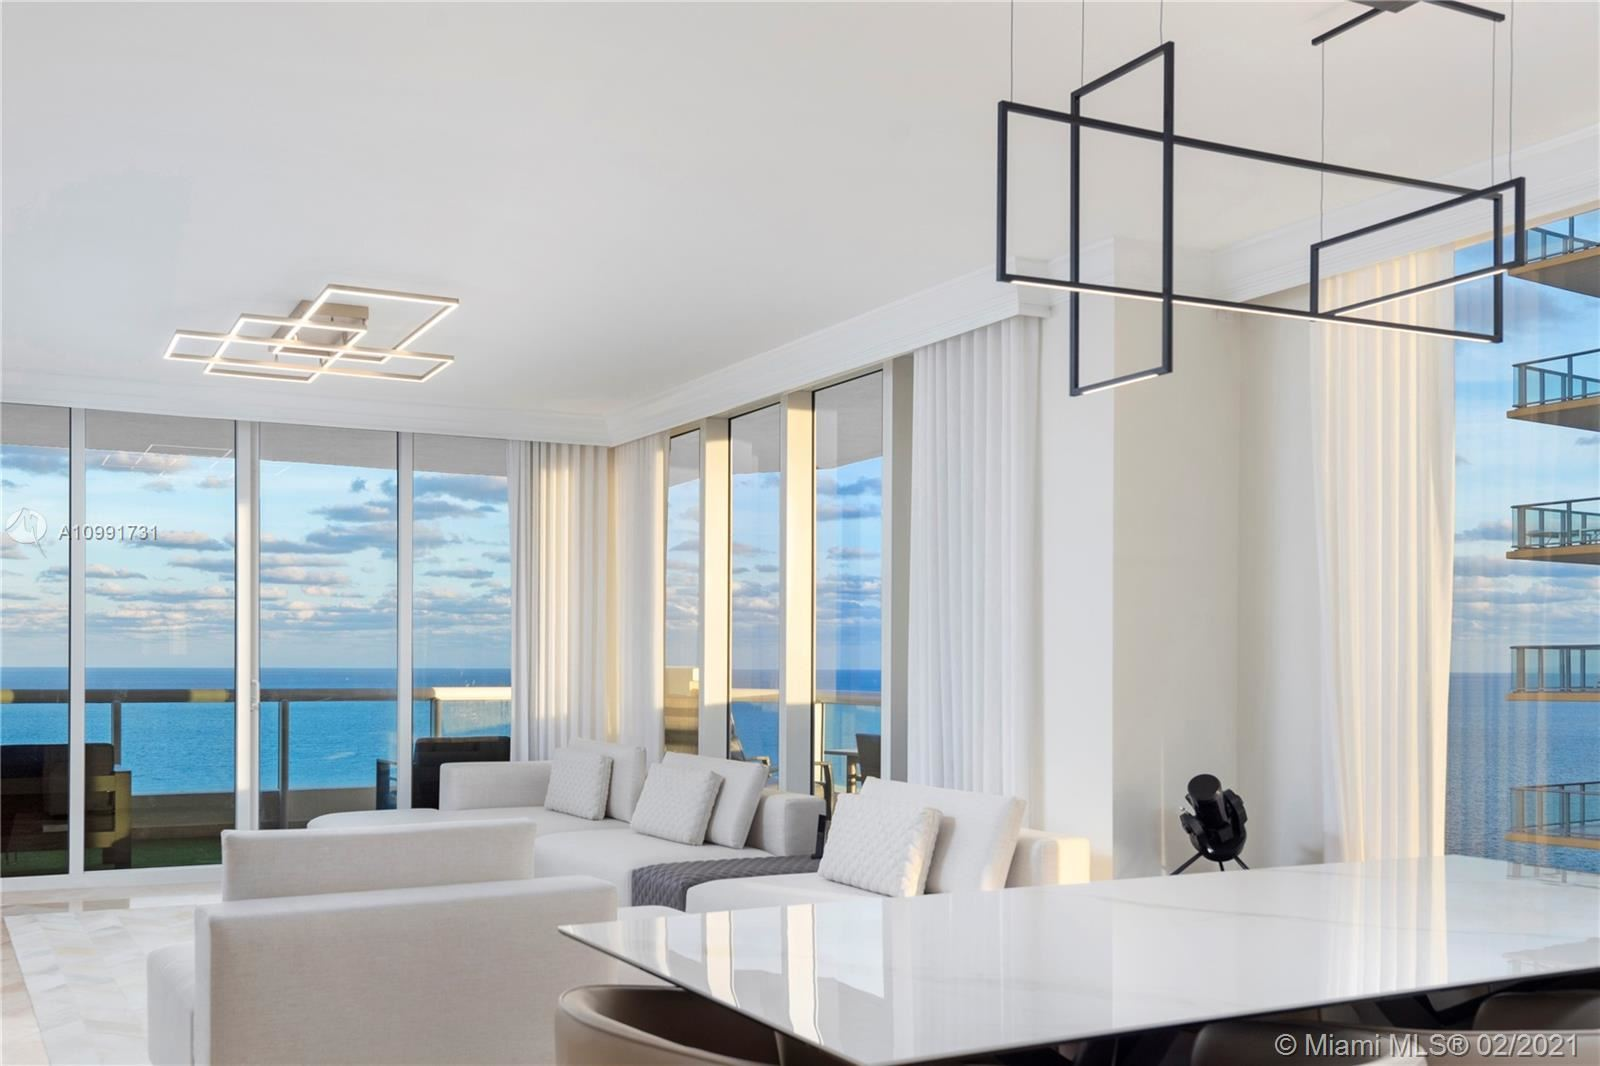 17875 Collins Ave #2606, Sunny Isles, FL 33160 - #: A10991731